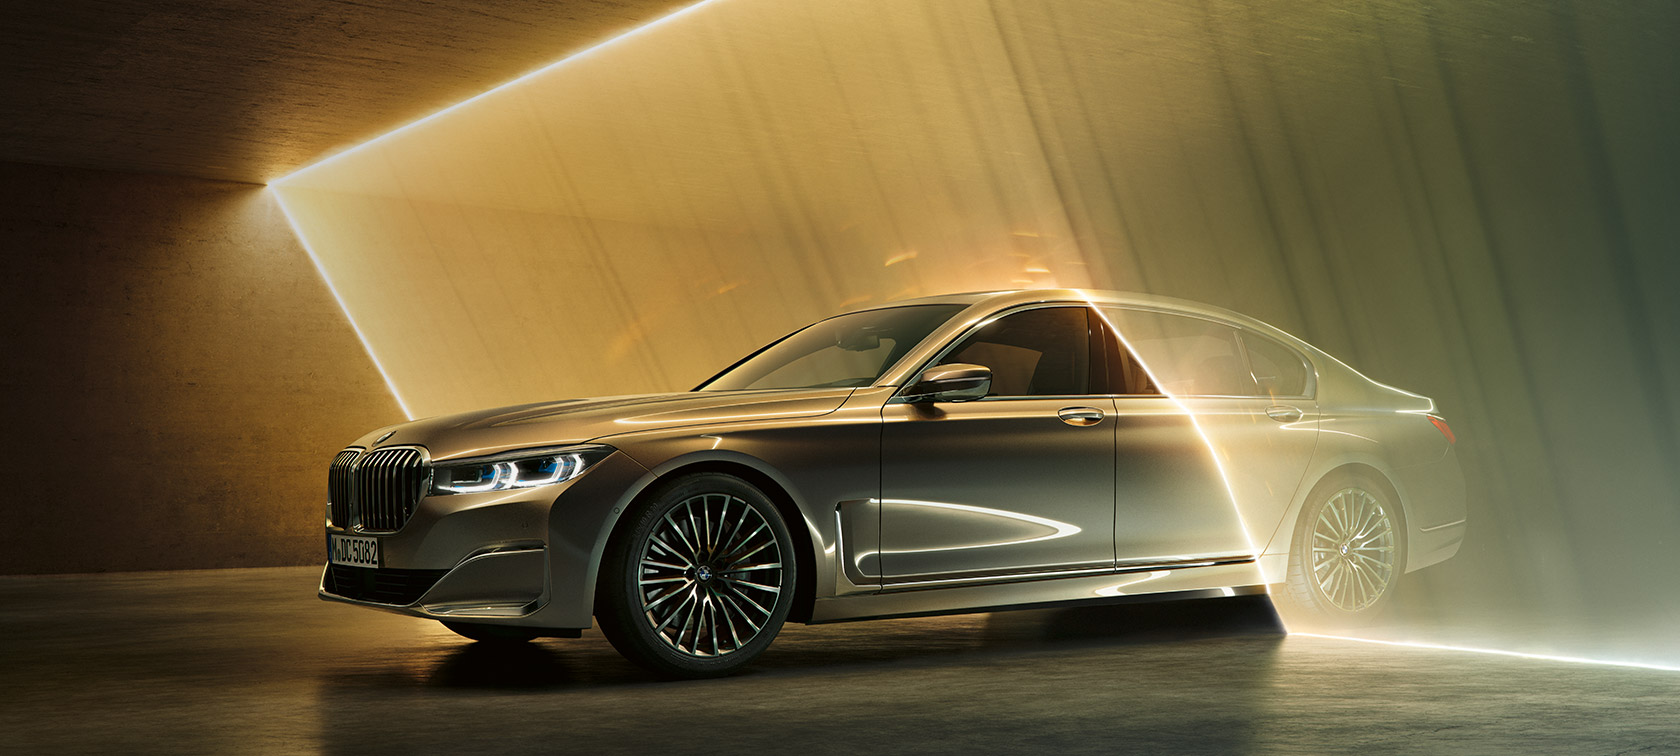 BMW 7 Series Sedan: grey BMW in three-quarter front view surrounded by beams of light